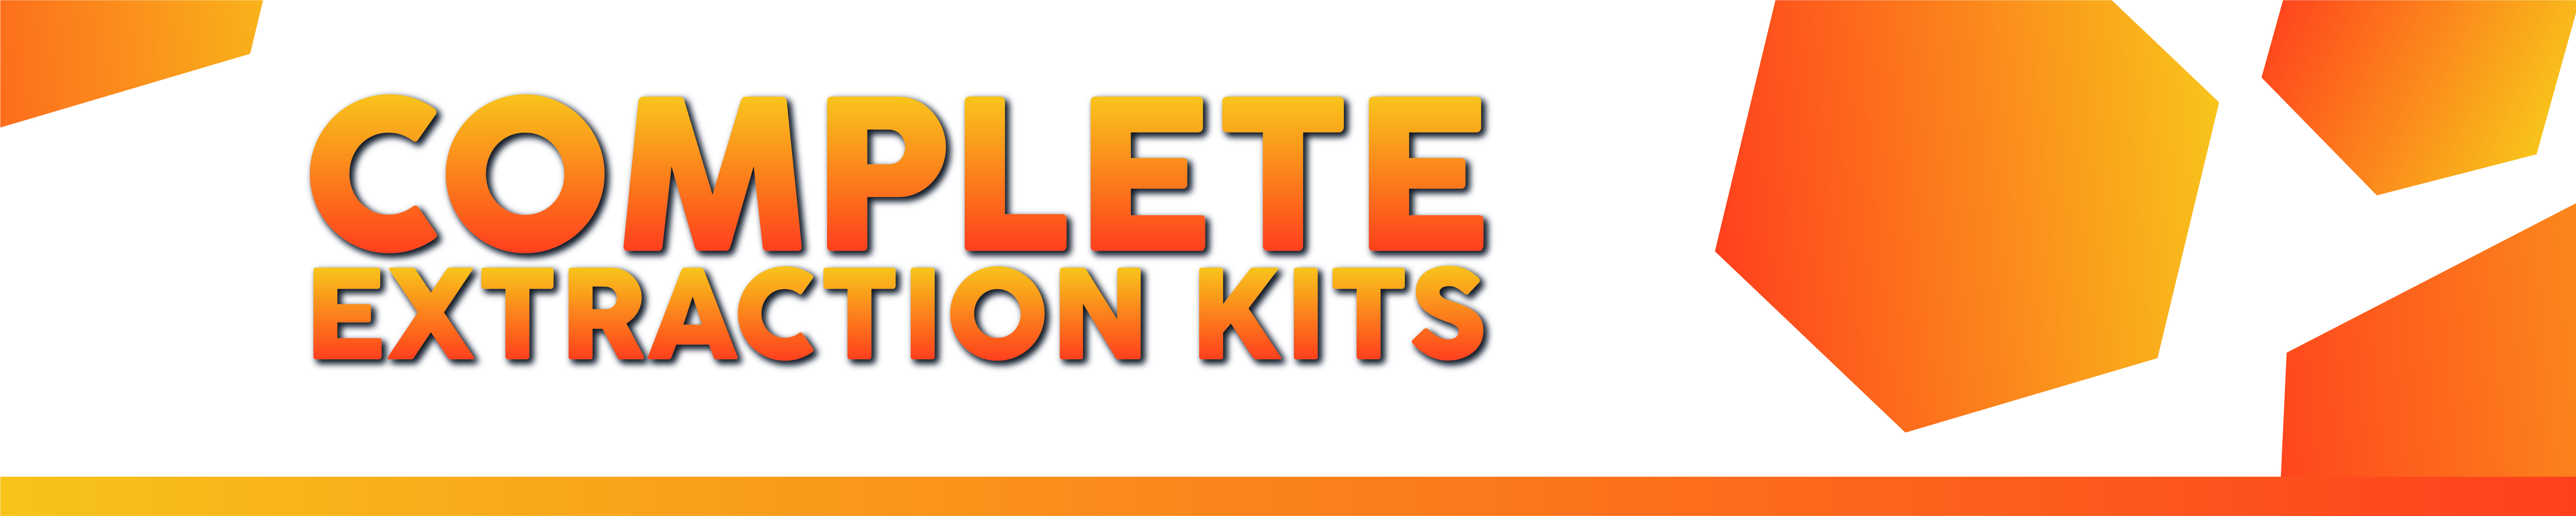 Complete Extraction Kits